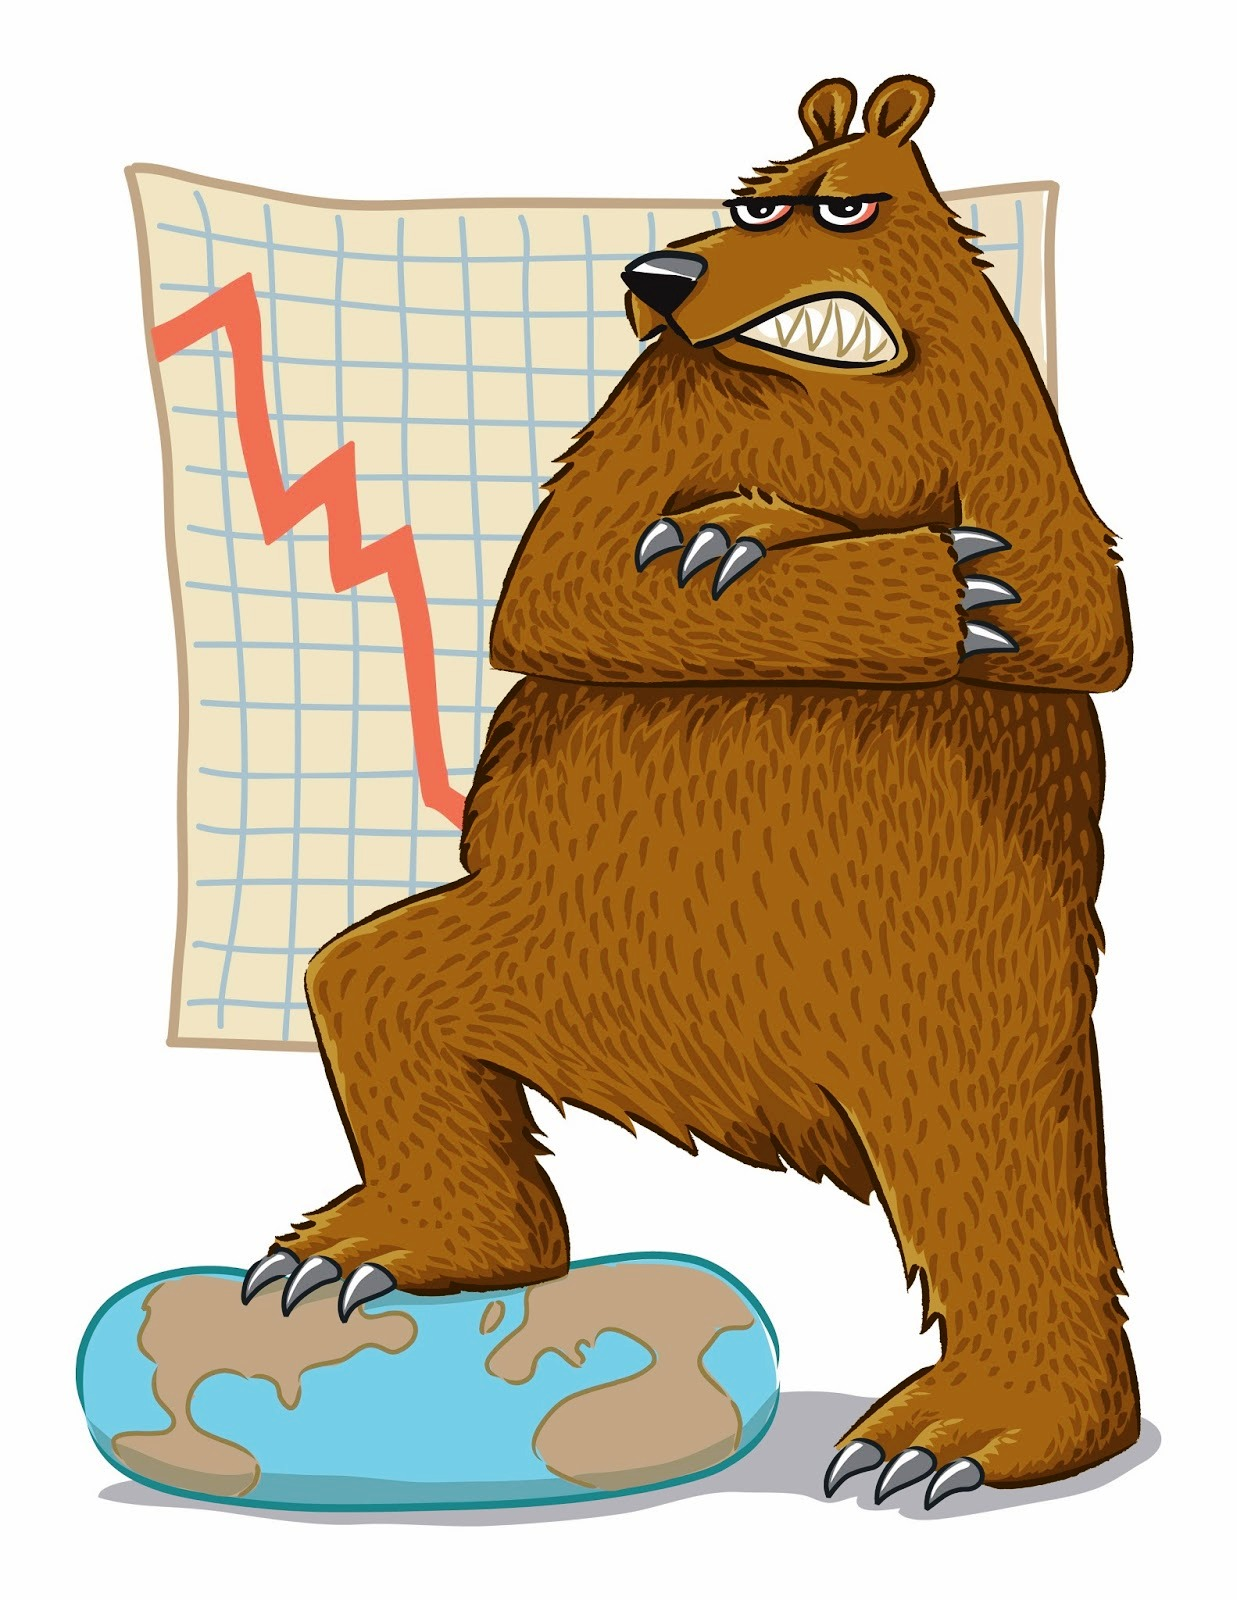 Friday sell-off drags most Ukrainian stocks down